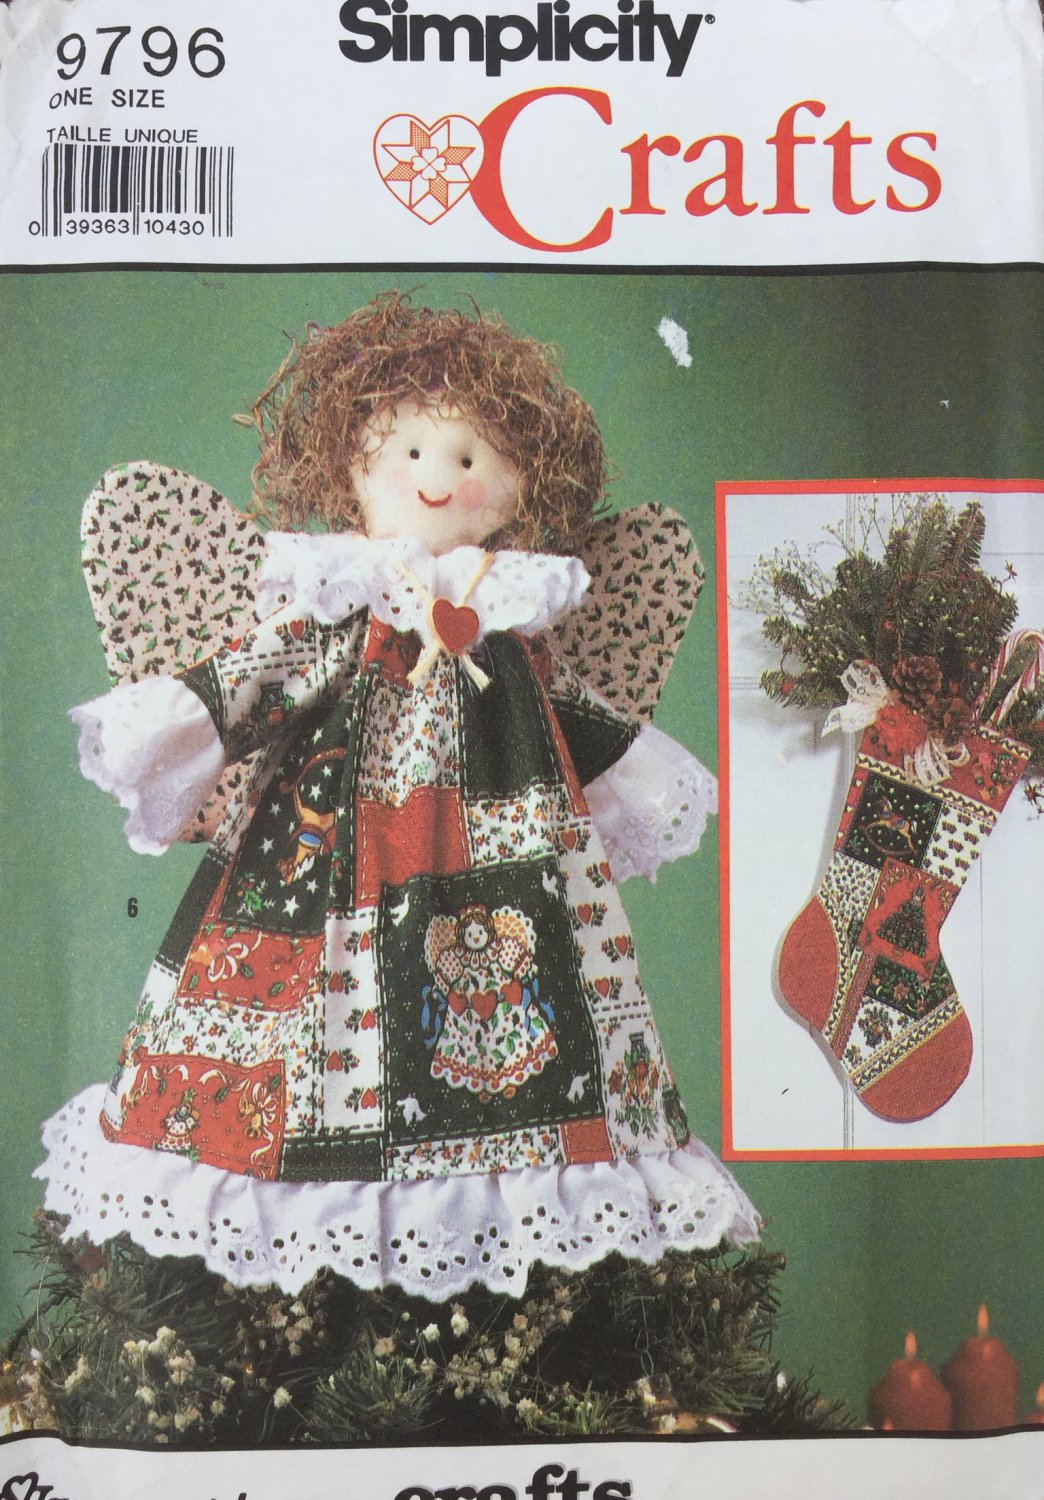 Christmas Holiday Tree Skirt Angel Ornaments Simplicity 9796 Sewing Pattern